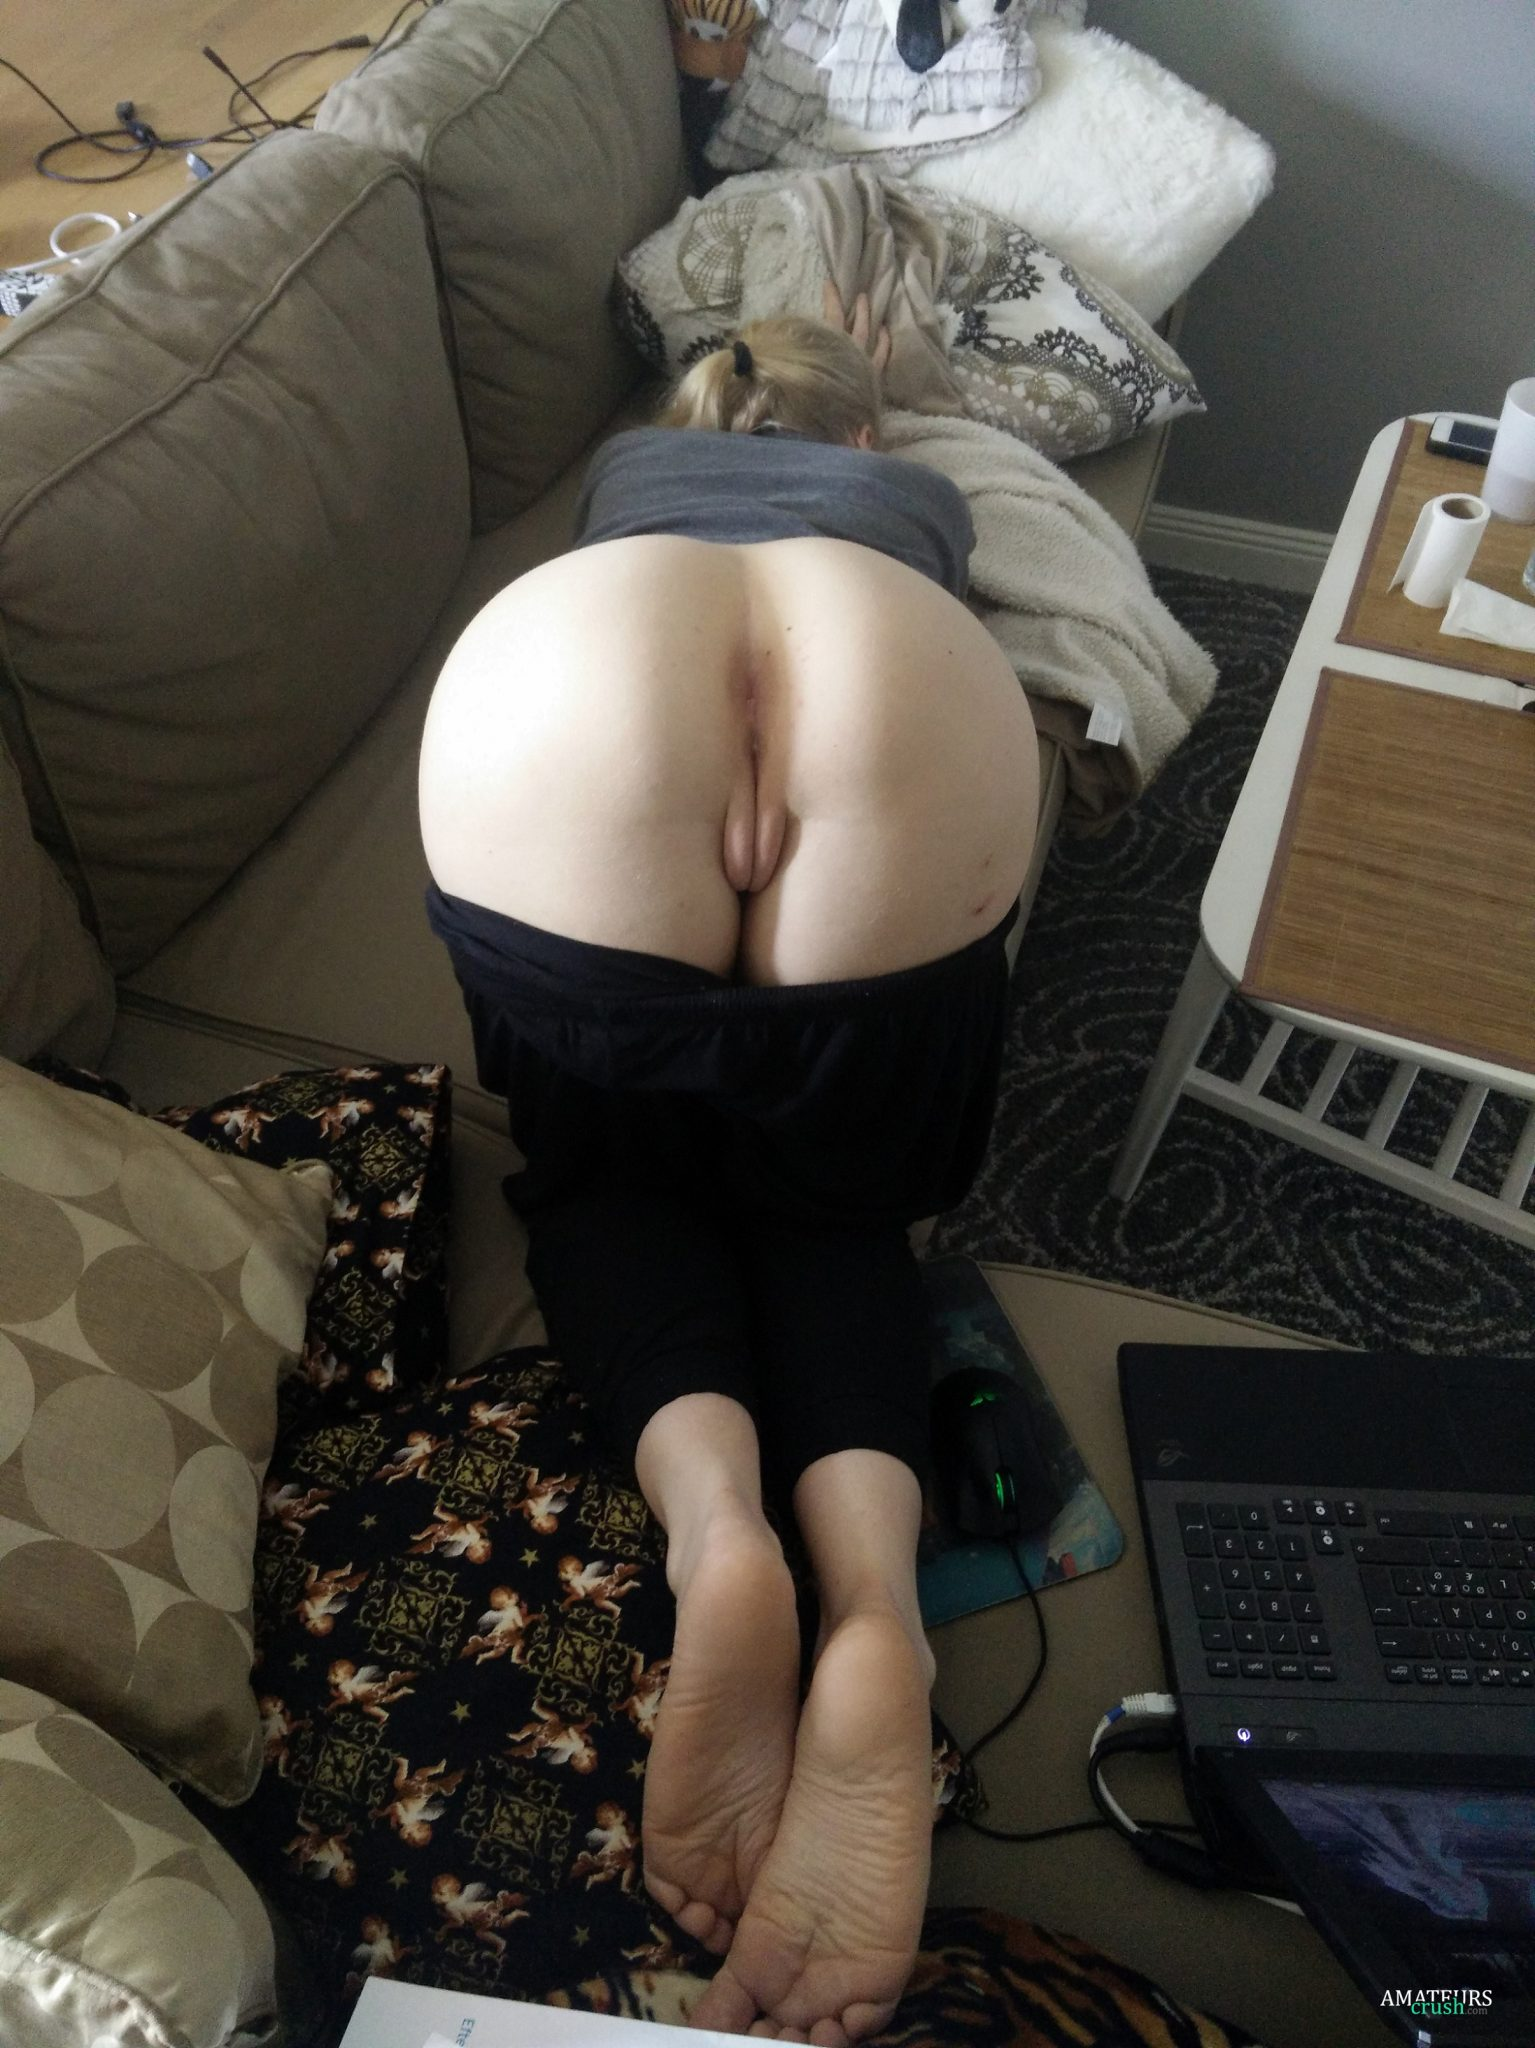 Teen pussy bent over pants down